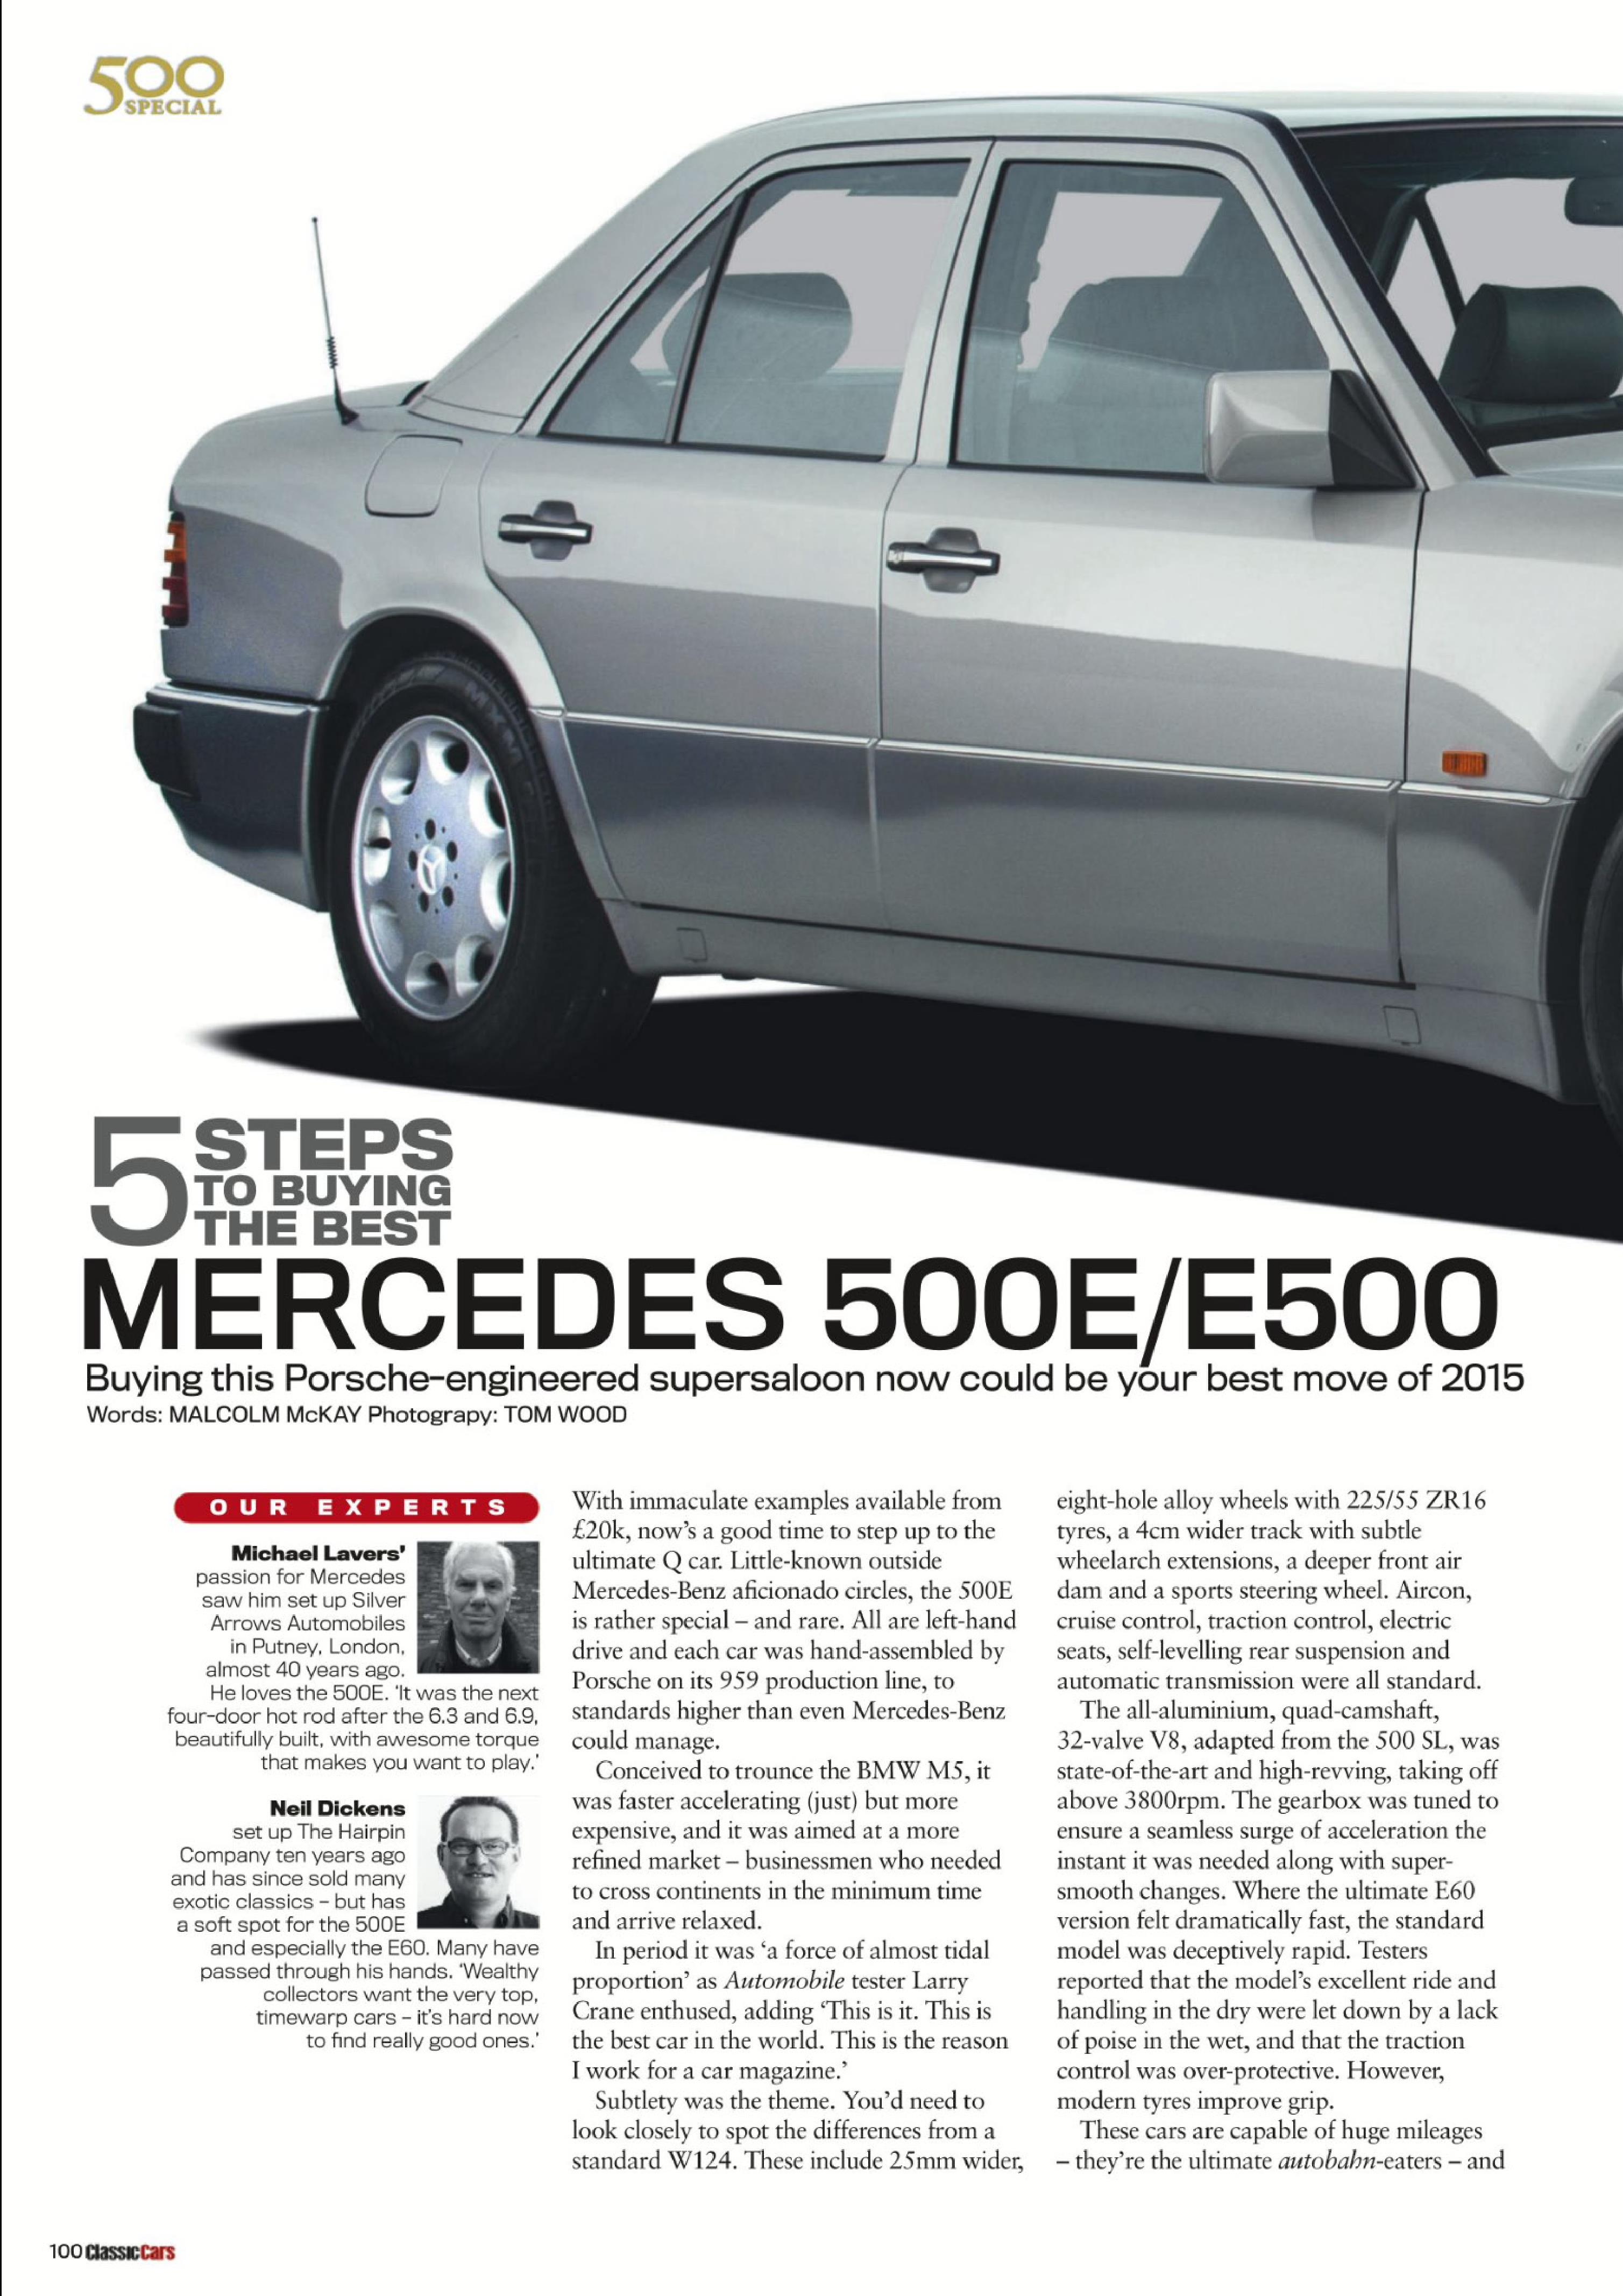 Mercedes 500E: buyers guide (Classic cars mag.) | Porsche cars history